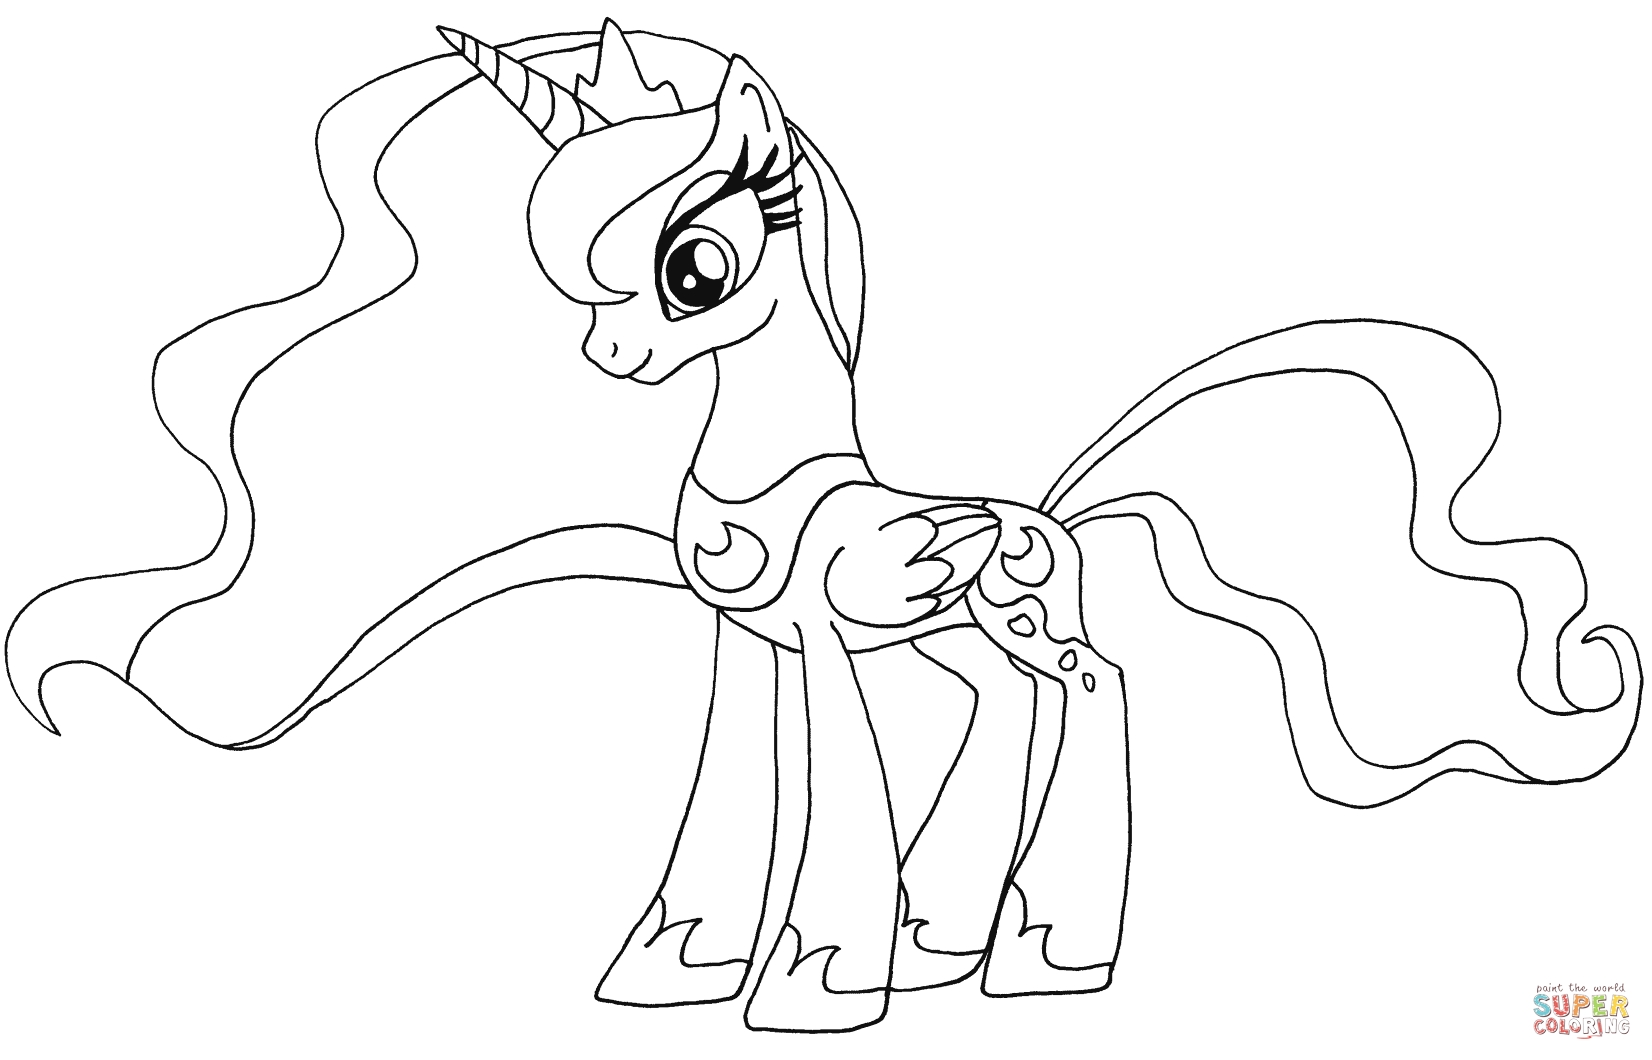 my little pony friendship is magic coloring pages luna princess luna my little pony coloring pages printable pony magic coloring pages is friendship my luna little